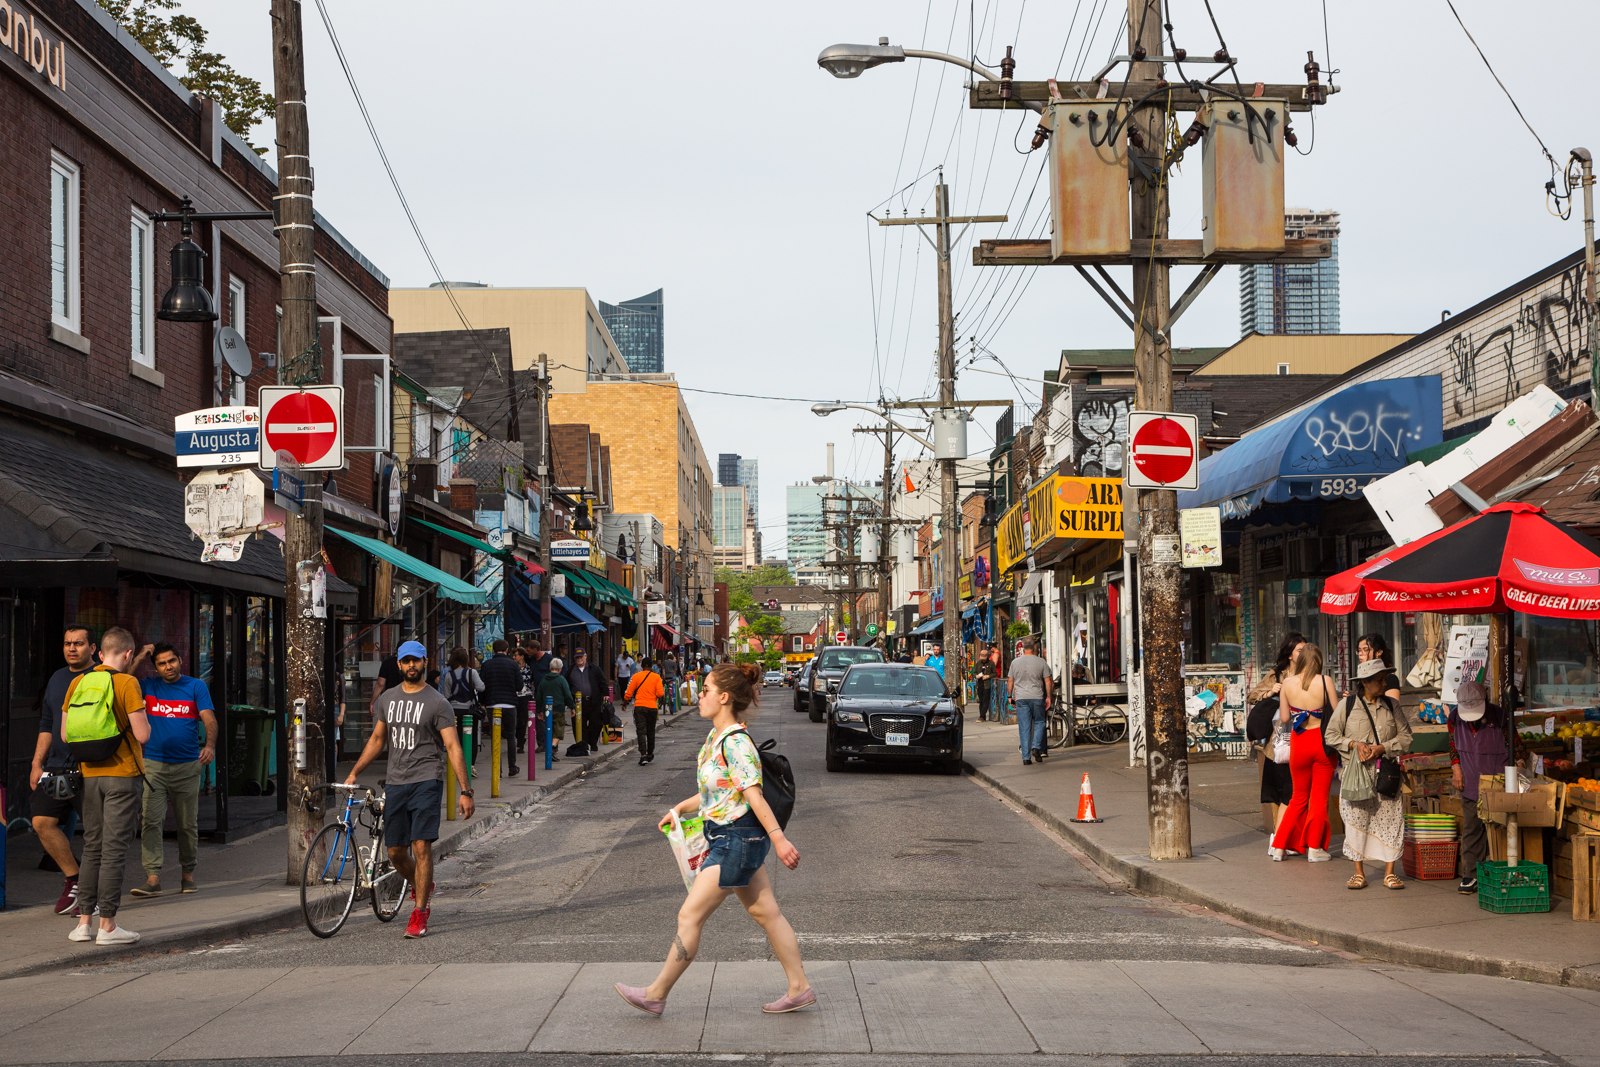 CP24 . Up to four people injured in Kensington Market shooting: police